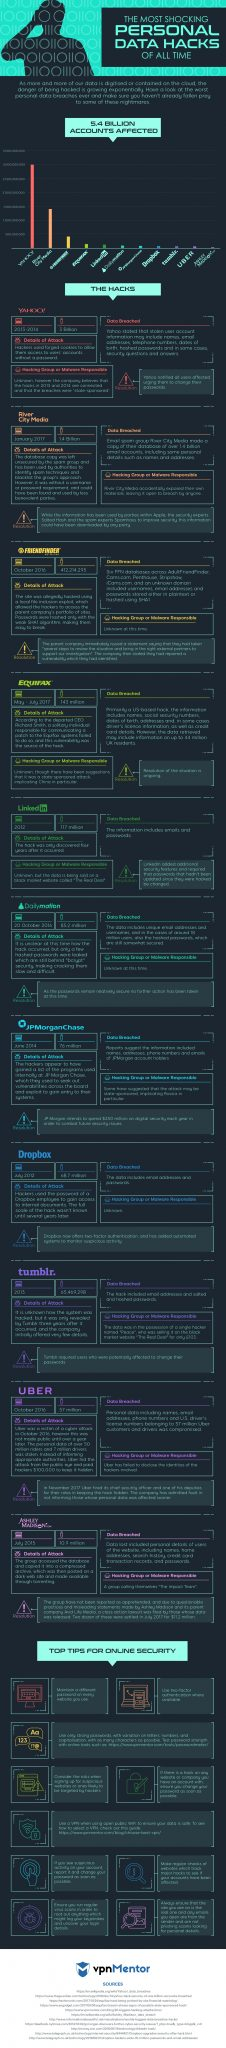 Infographic data hacks  - Infographic data hacks - Infographic: the most shocking personal data hacks of all time